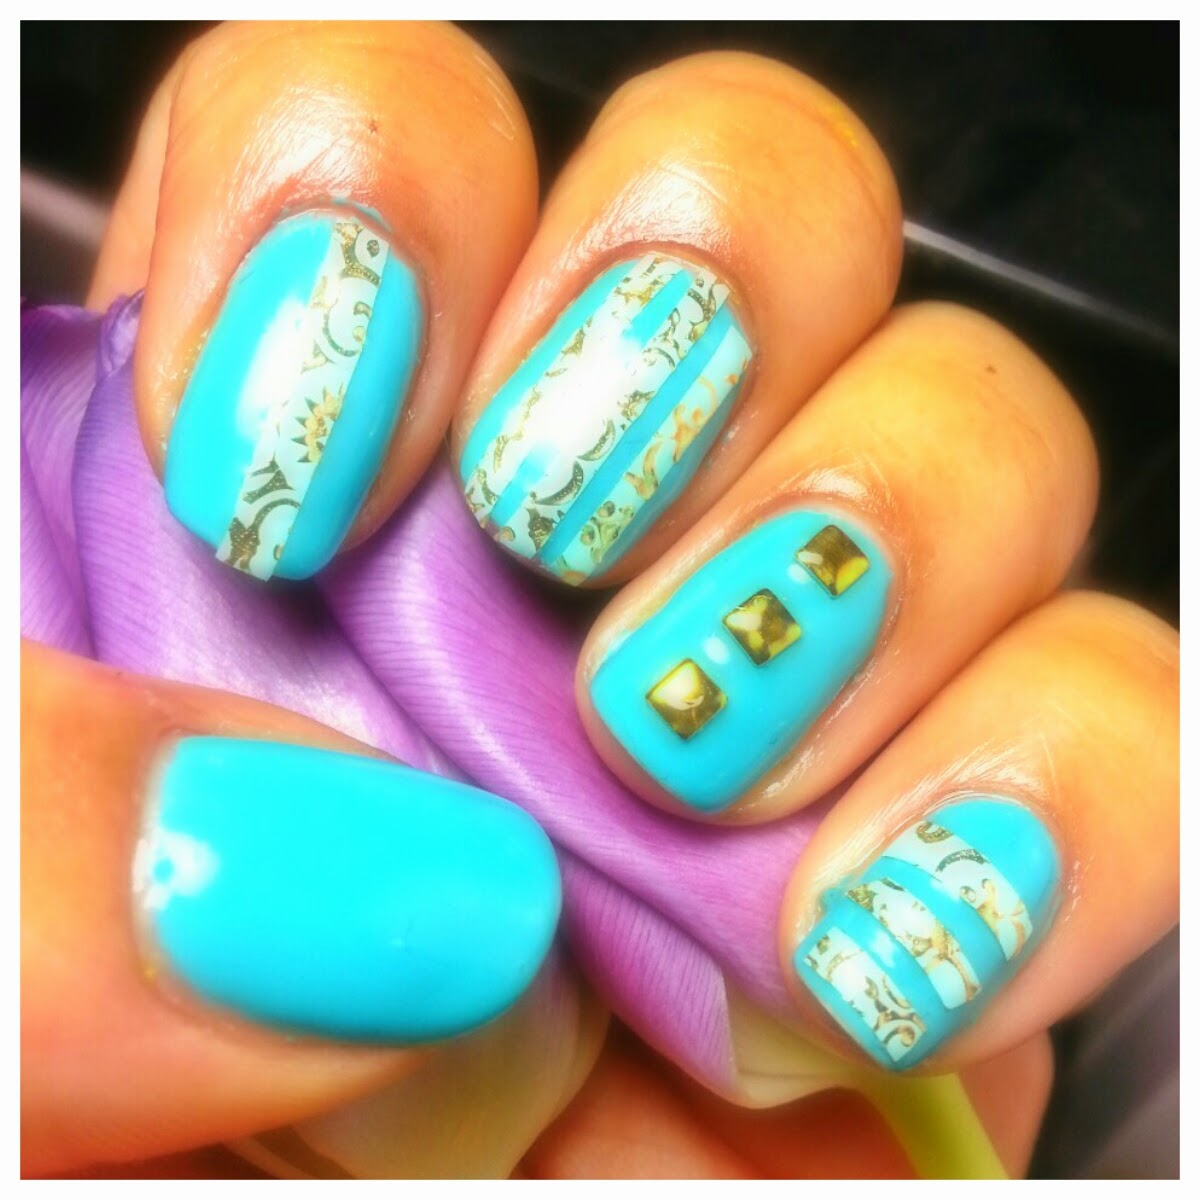 A picture of nails with Sally Hansen Gel Polish in #370 For Teal with Revlon by Marchesa 24k Brocade